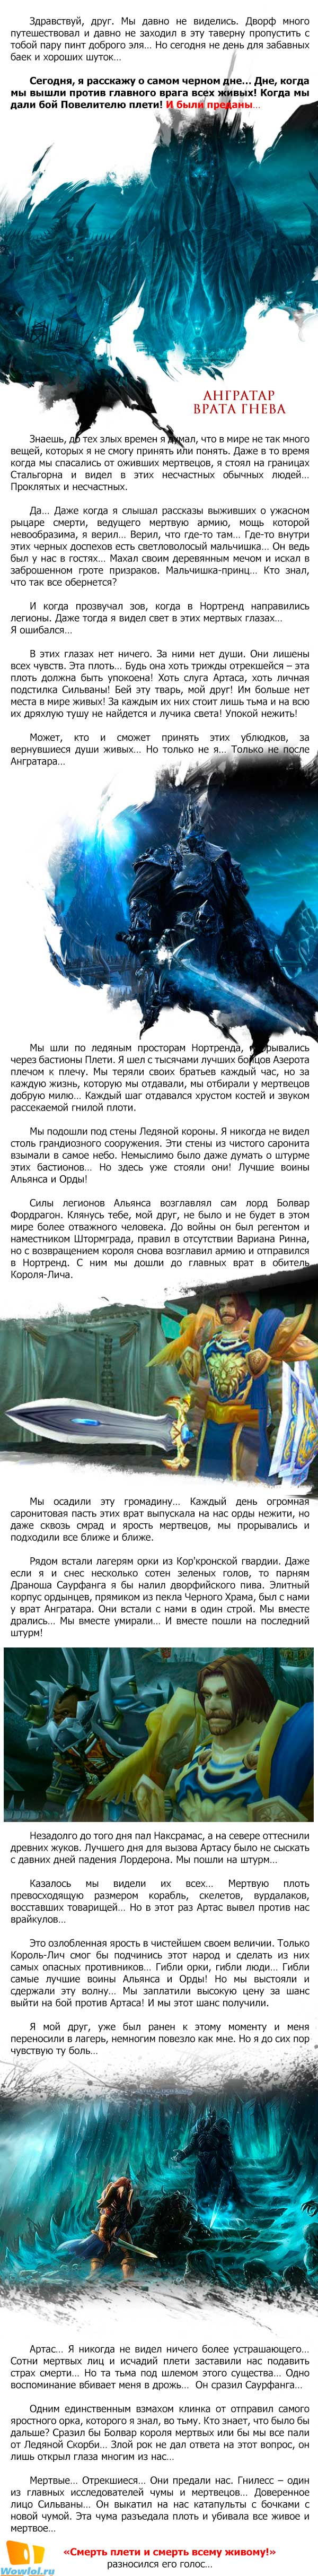 Печальное событие World of Warcraft: Wrath of the Lich King